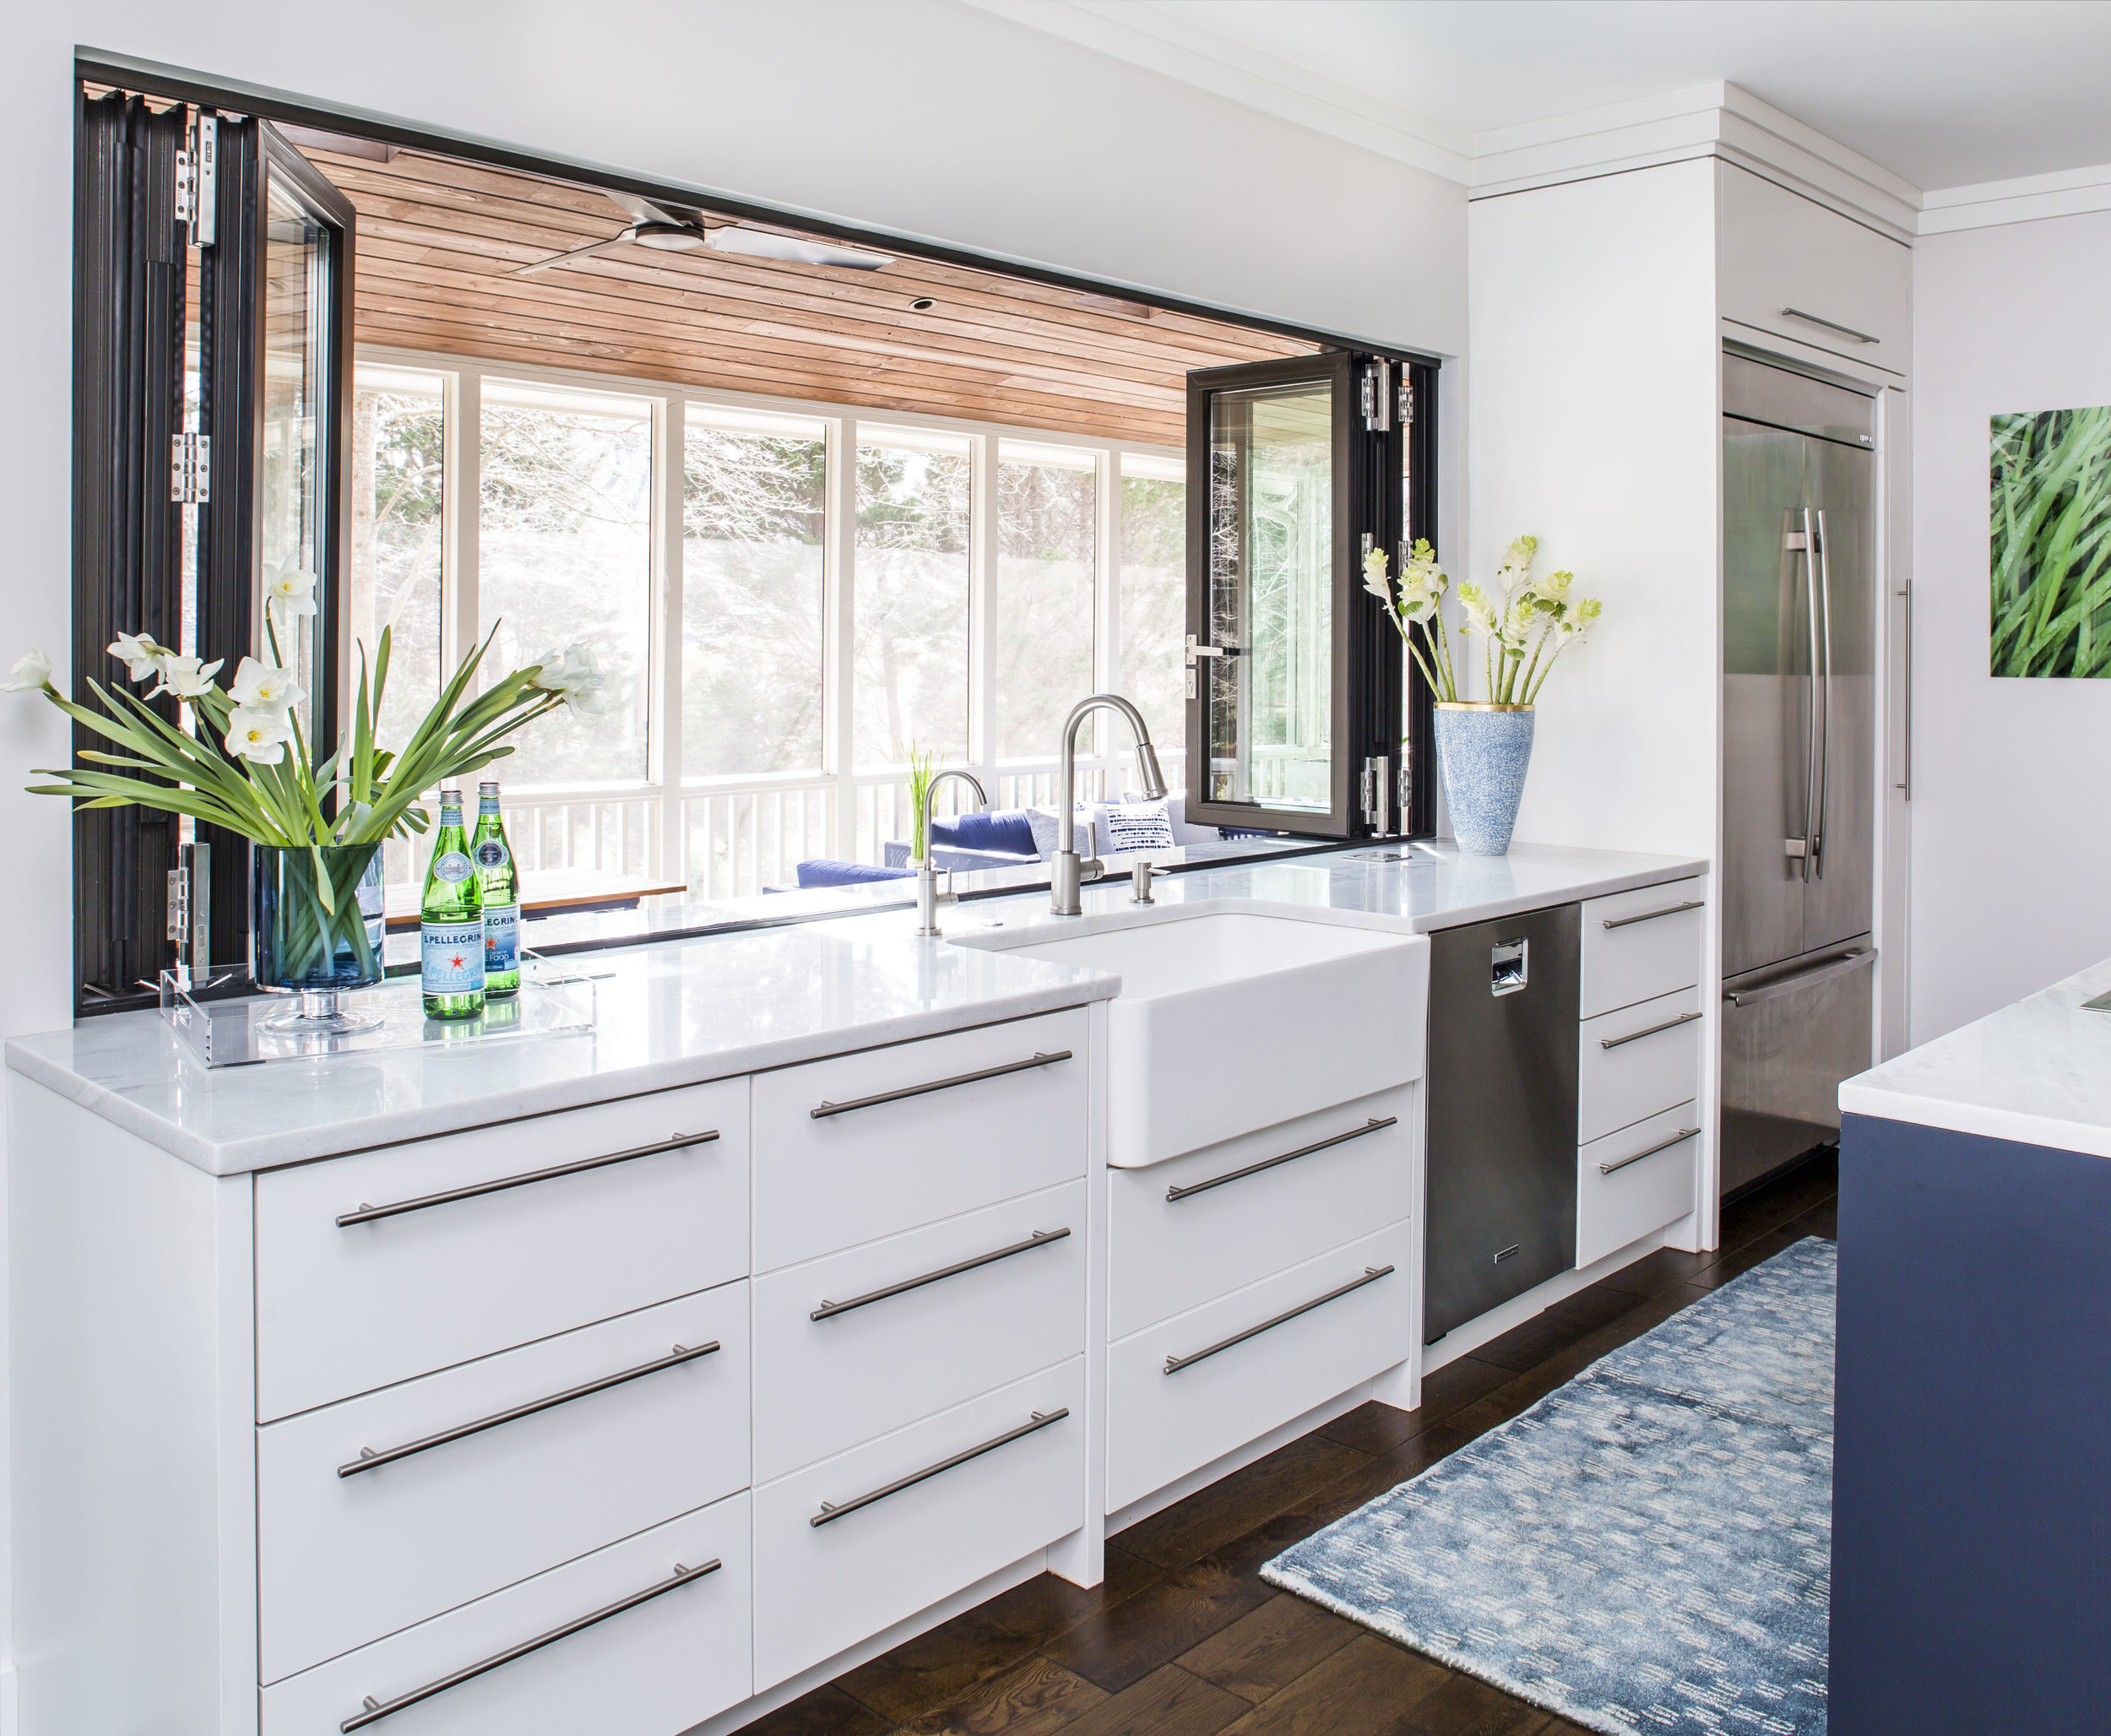 Contemporary kitchen with white cabinetry, apron sink, stainless steel appliances and accordion windows